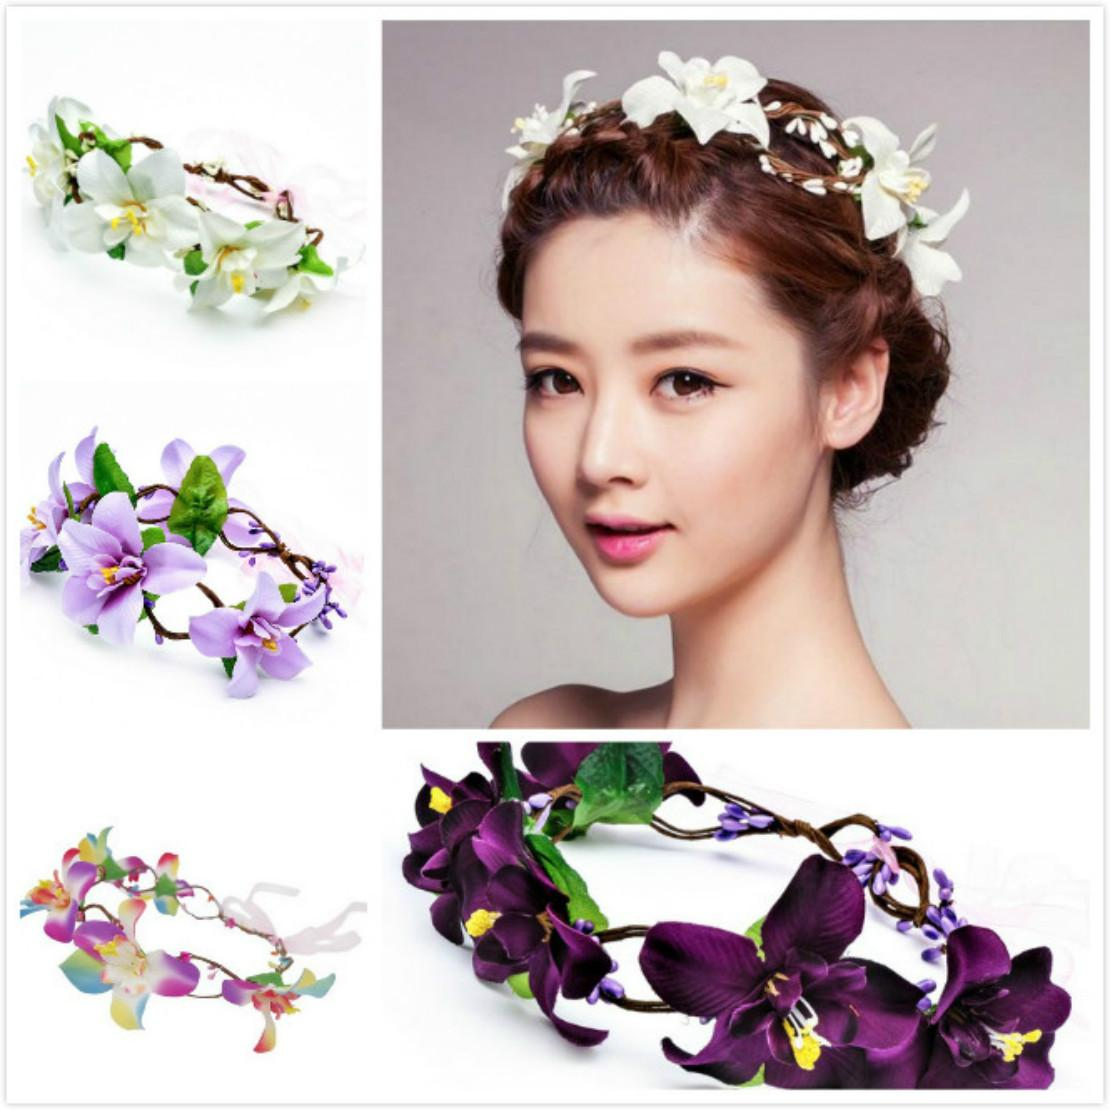 2019 Elegant Bridal Hair Wreath Halo Lily Flower Crown With Adjustable  Ribbon For Wedding Festivals Bridal Hair Accessories From Janet521 c5431583318